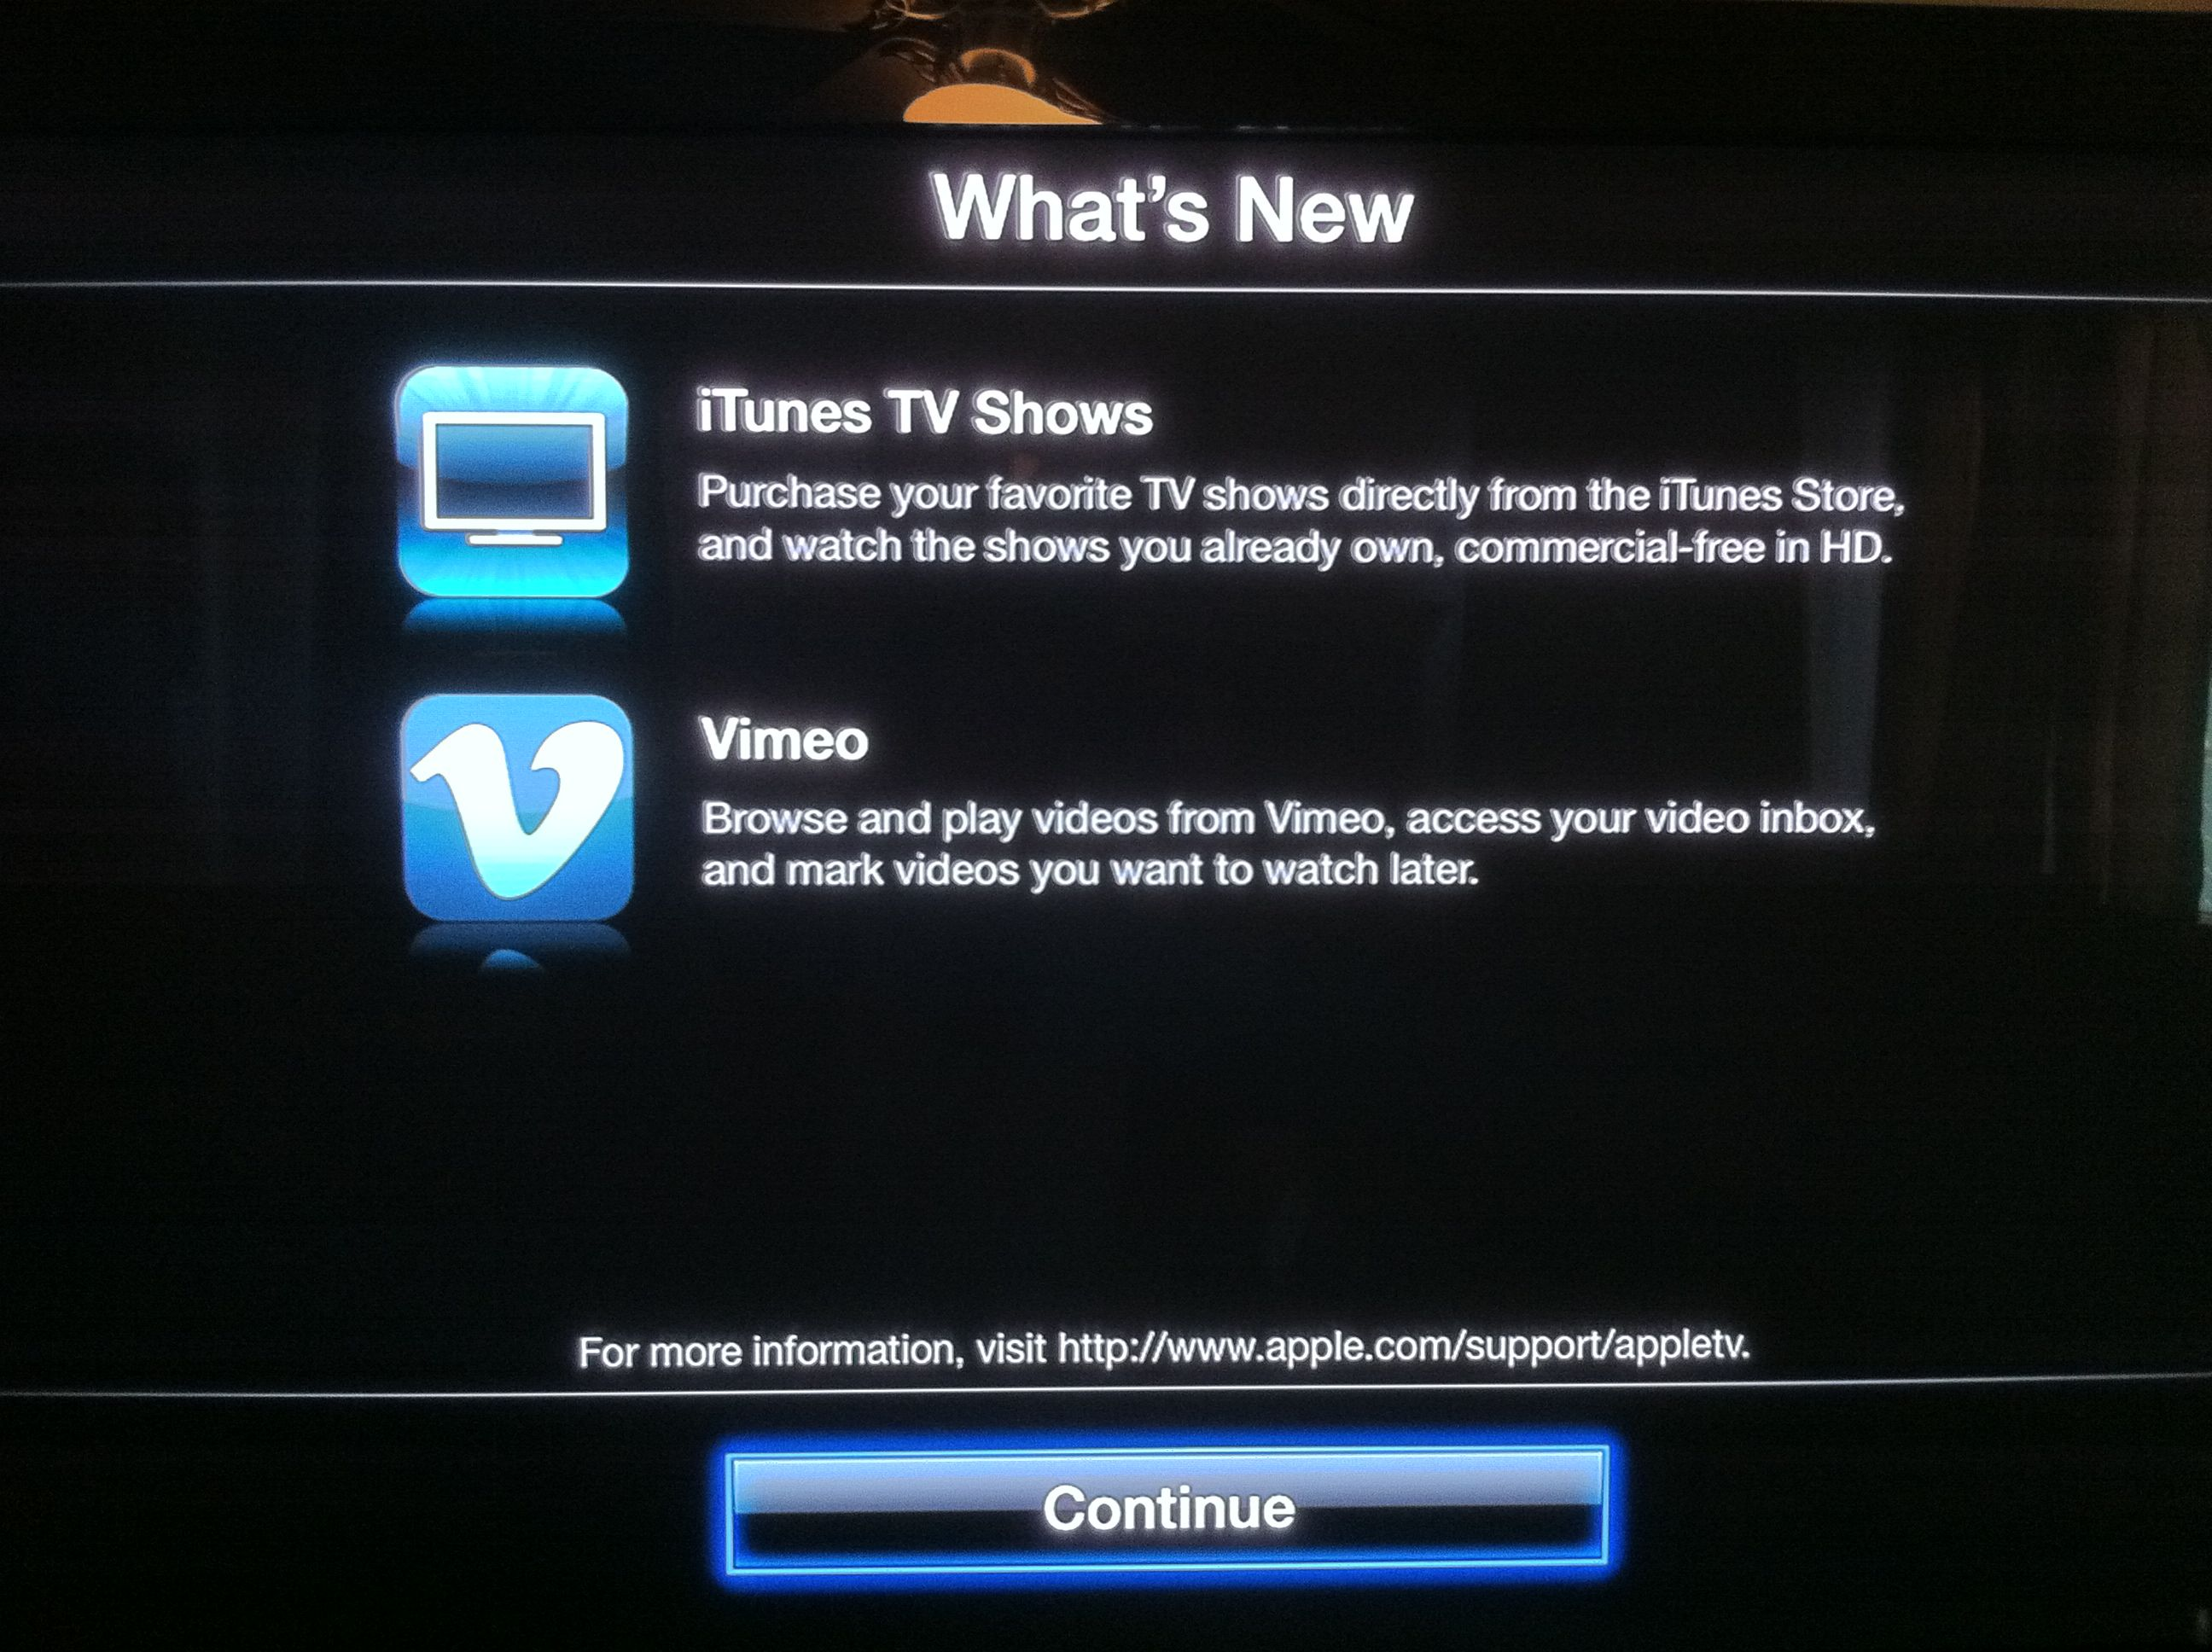 Apple TV iOS 4 3 streams TV shows from iCloud and Vimeo